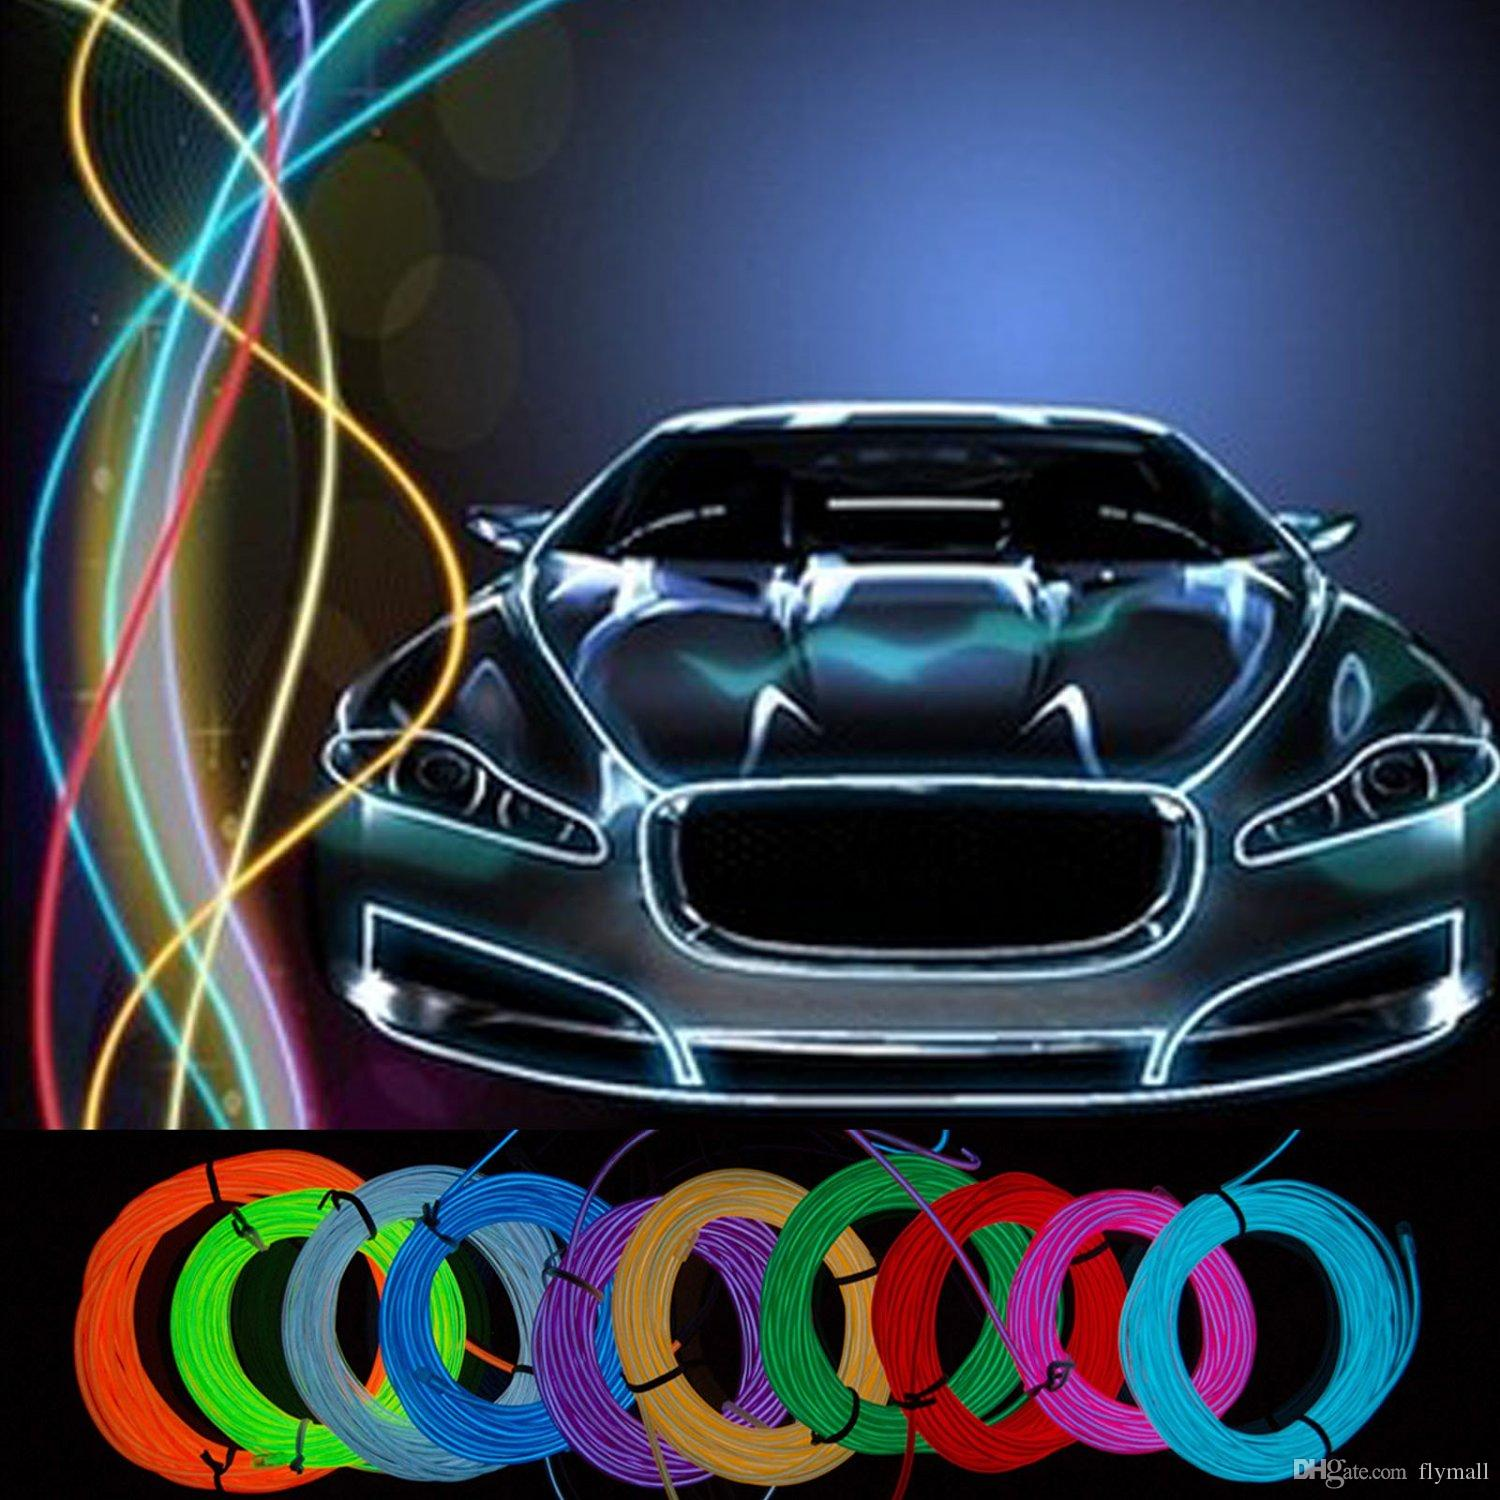 5M Flexible Neon Light 16.4ft Glow EL Wire String Strip Rope Tube Light Car Dance Party Costume+ Controller Decorative Light Christmas Light